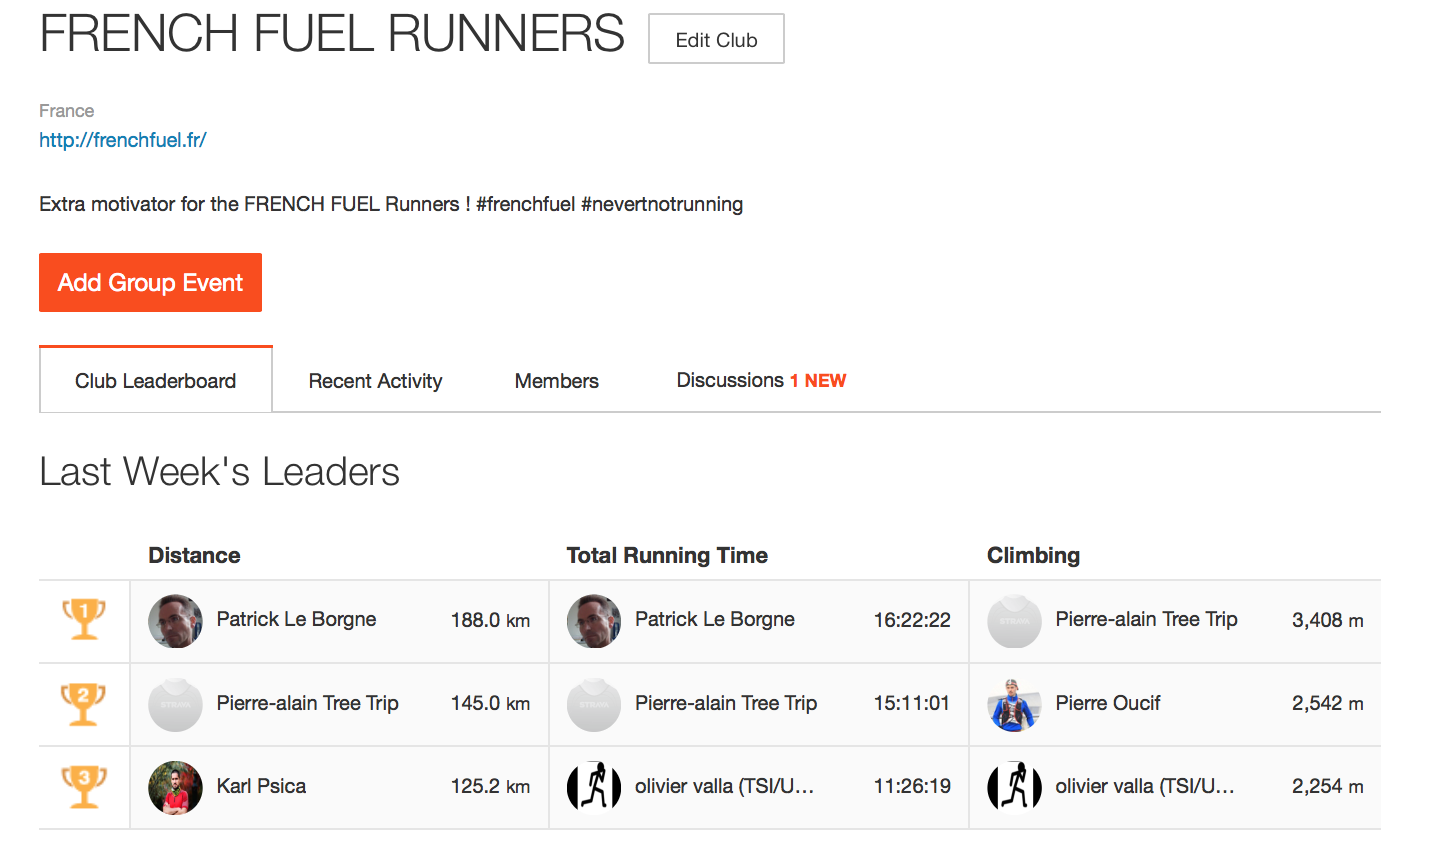 Strava_FRENCHFUEL_Runners_Weekly_Ranking_w1m2y17